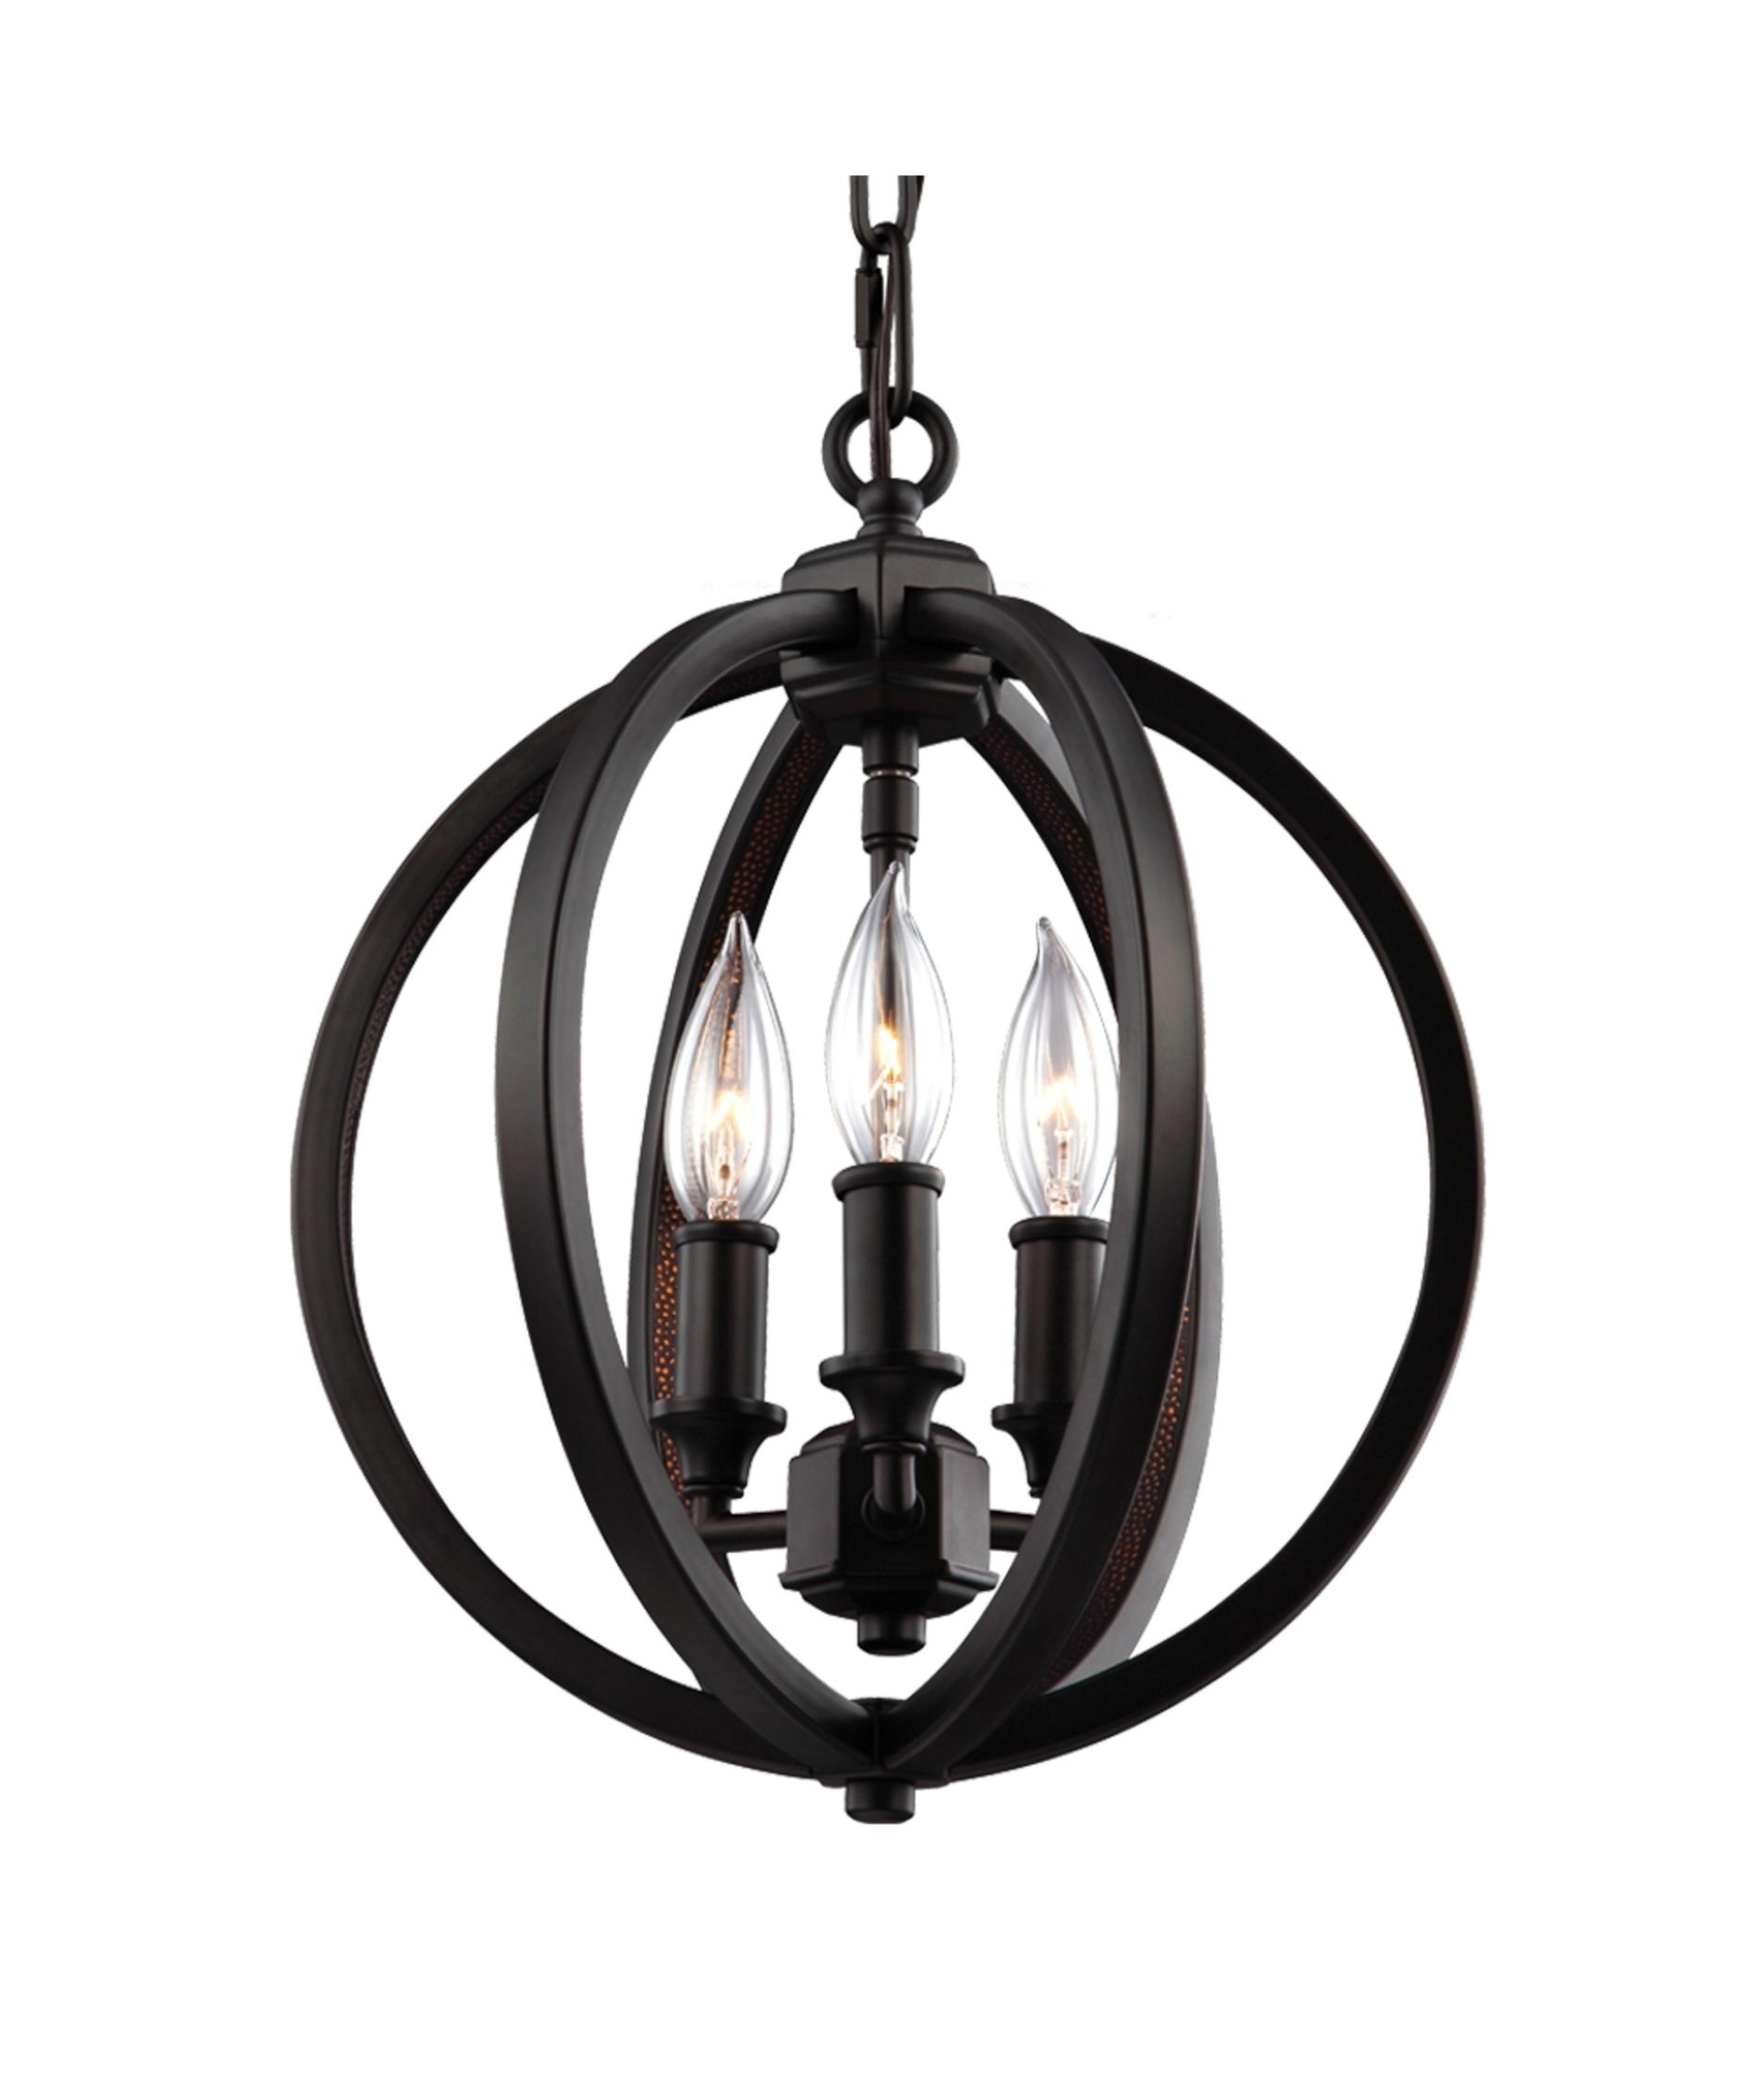 Murray Feiss F3059 3 Corinne 11 Inch Wide 3 Light Mini Chandelier In Well Liked Feiss Chandeliers (View 11 of 15)